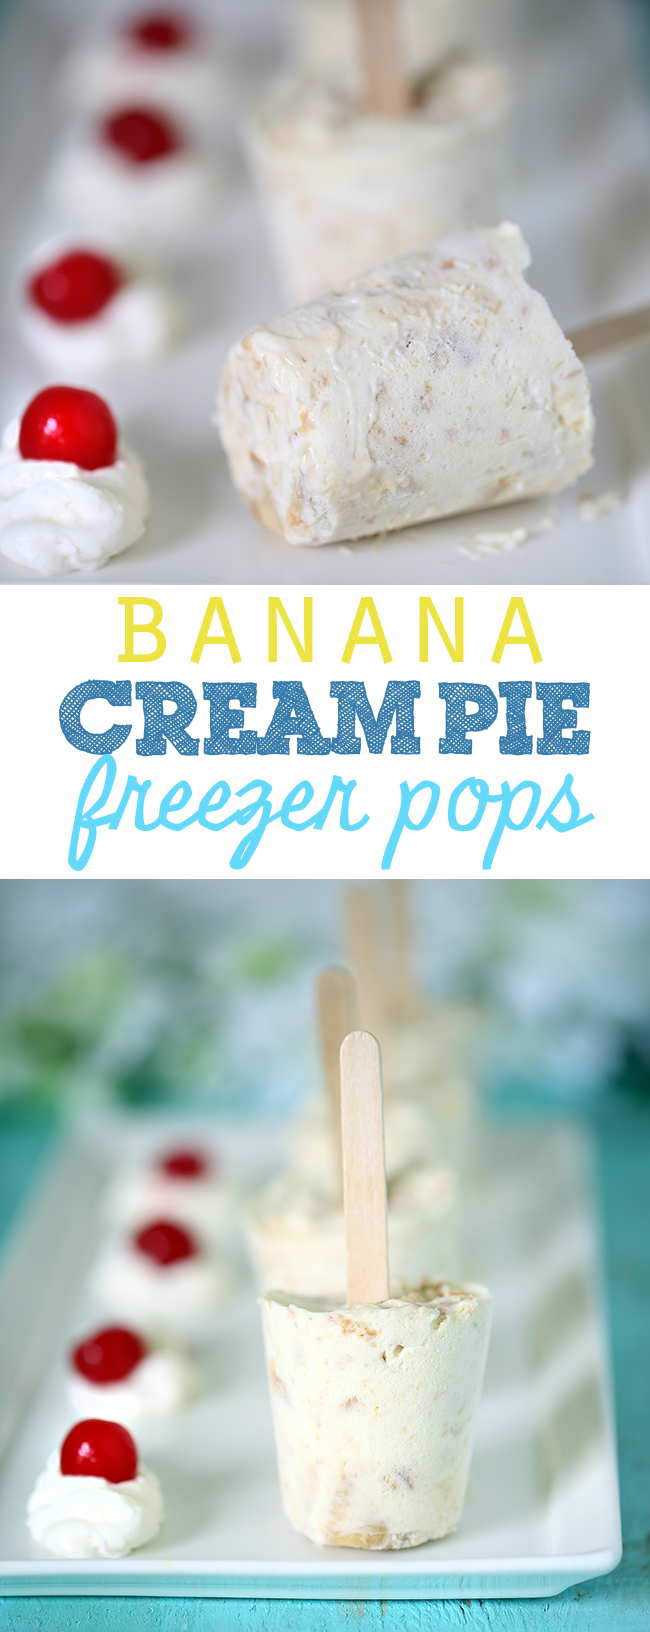 Easy to make banana cream pie pops that taste like a decadent dessert on a stick. Mmm!